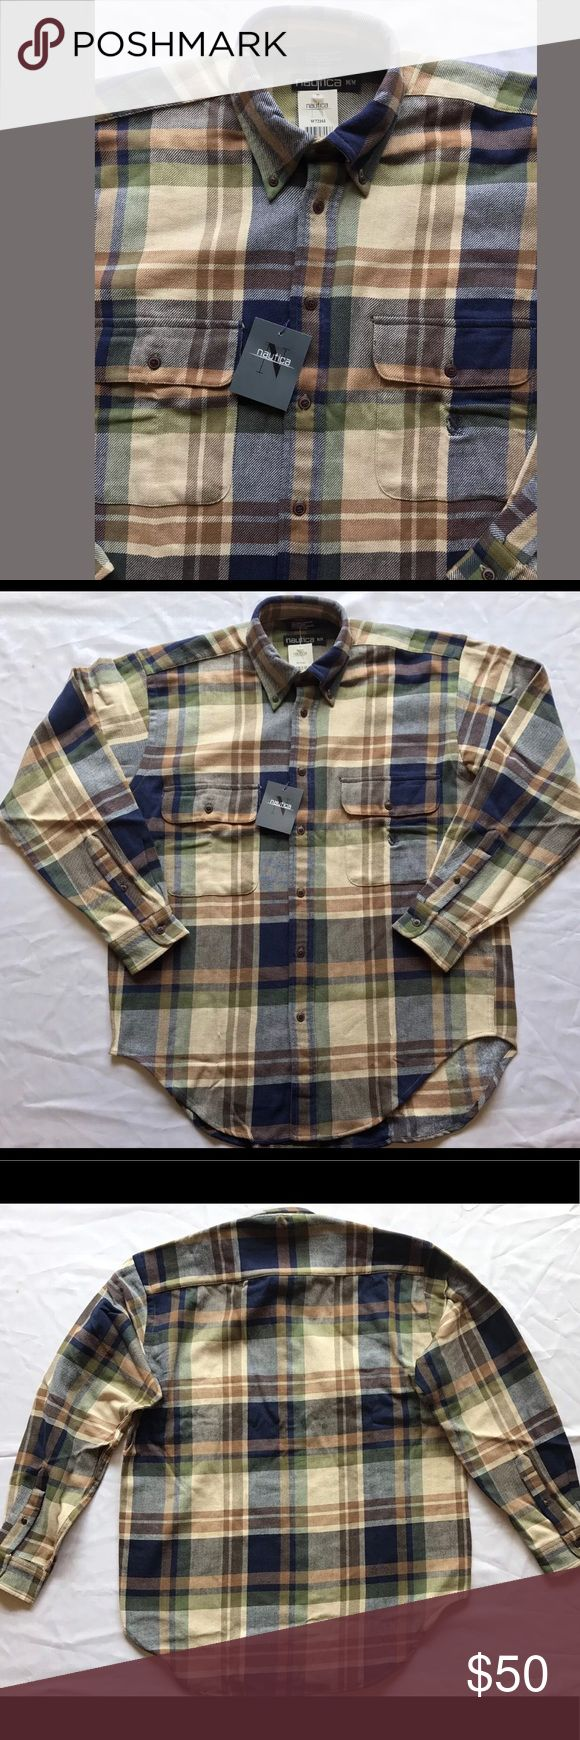 Selling this NAUTICA Navy Blue Brown BF Checkered LS Shirt NEW on Poshmark! My username is: rykrfinds. #shopmycloset #poshmark #fashion #shopping #style #forsale #Nautica #Other